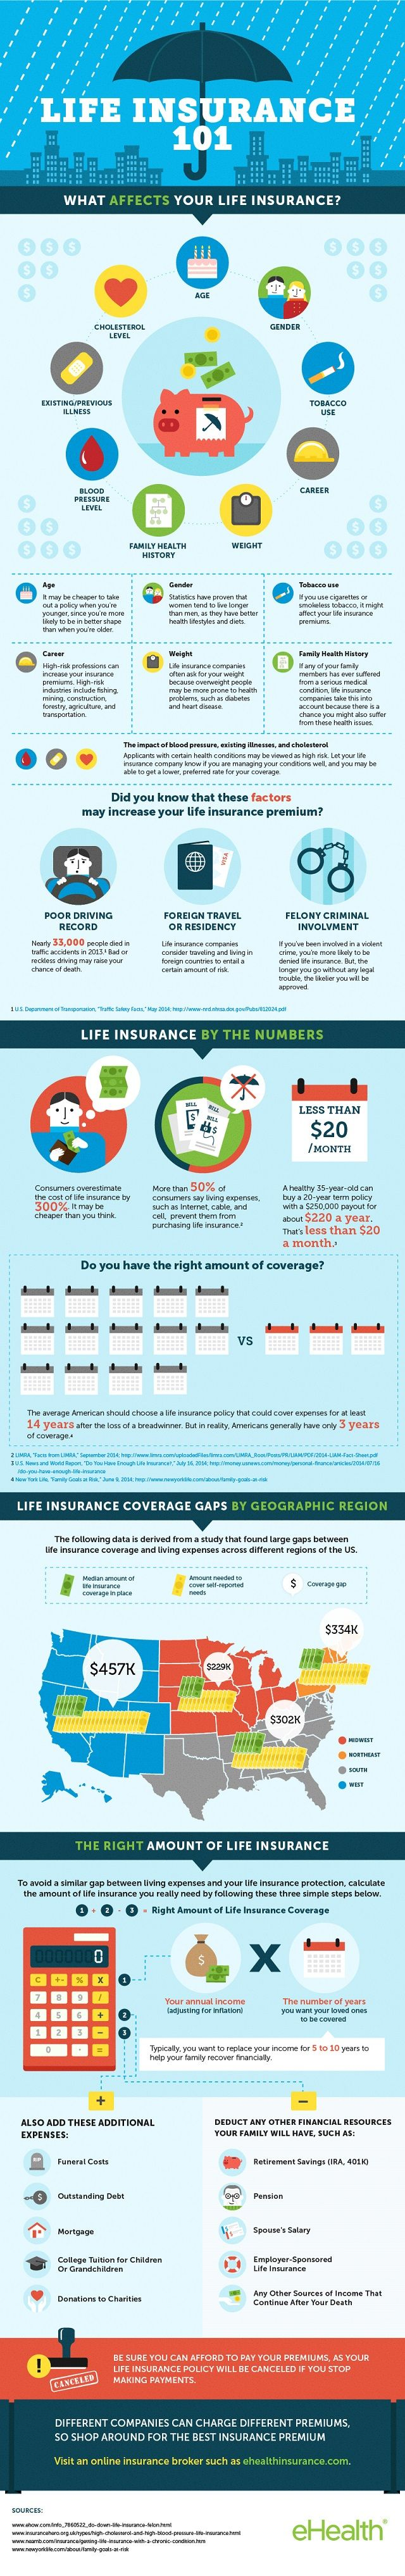 View our infographic on life insurance and learn about the factors affecting premiums, life insurance coverage gap & true costs of life insurance.